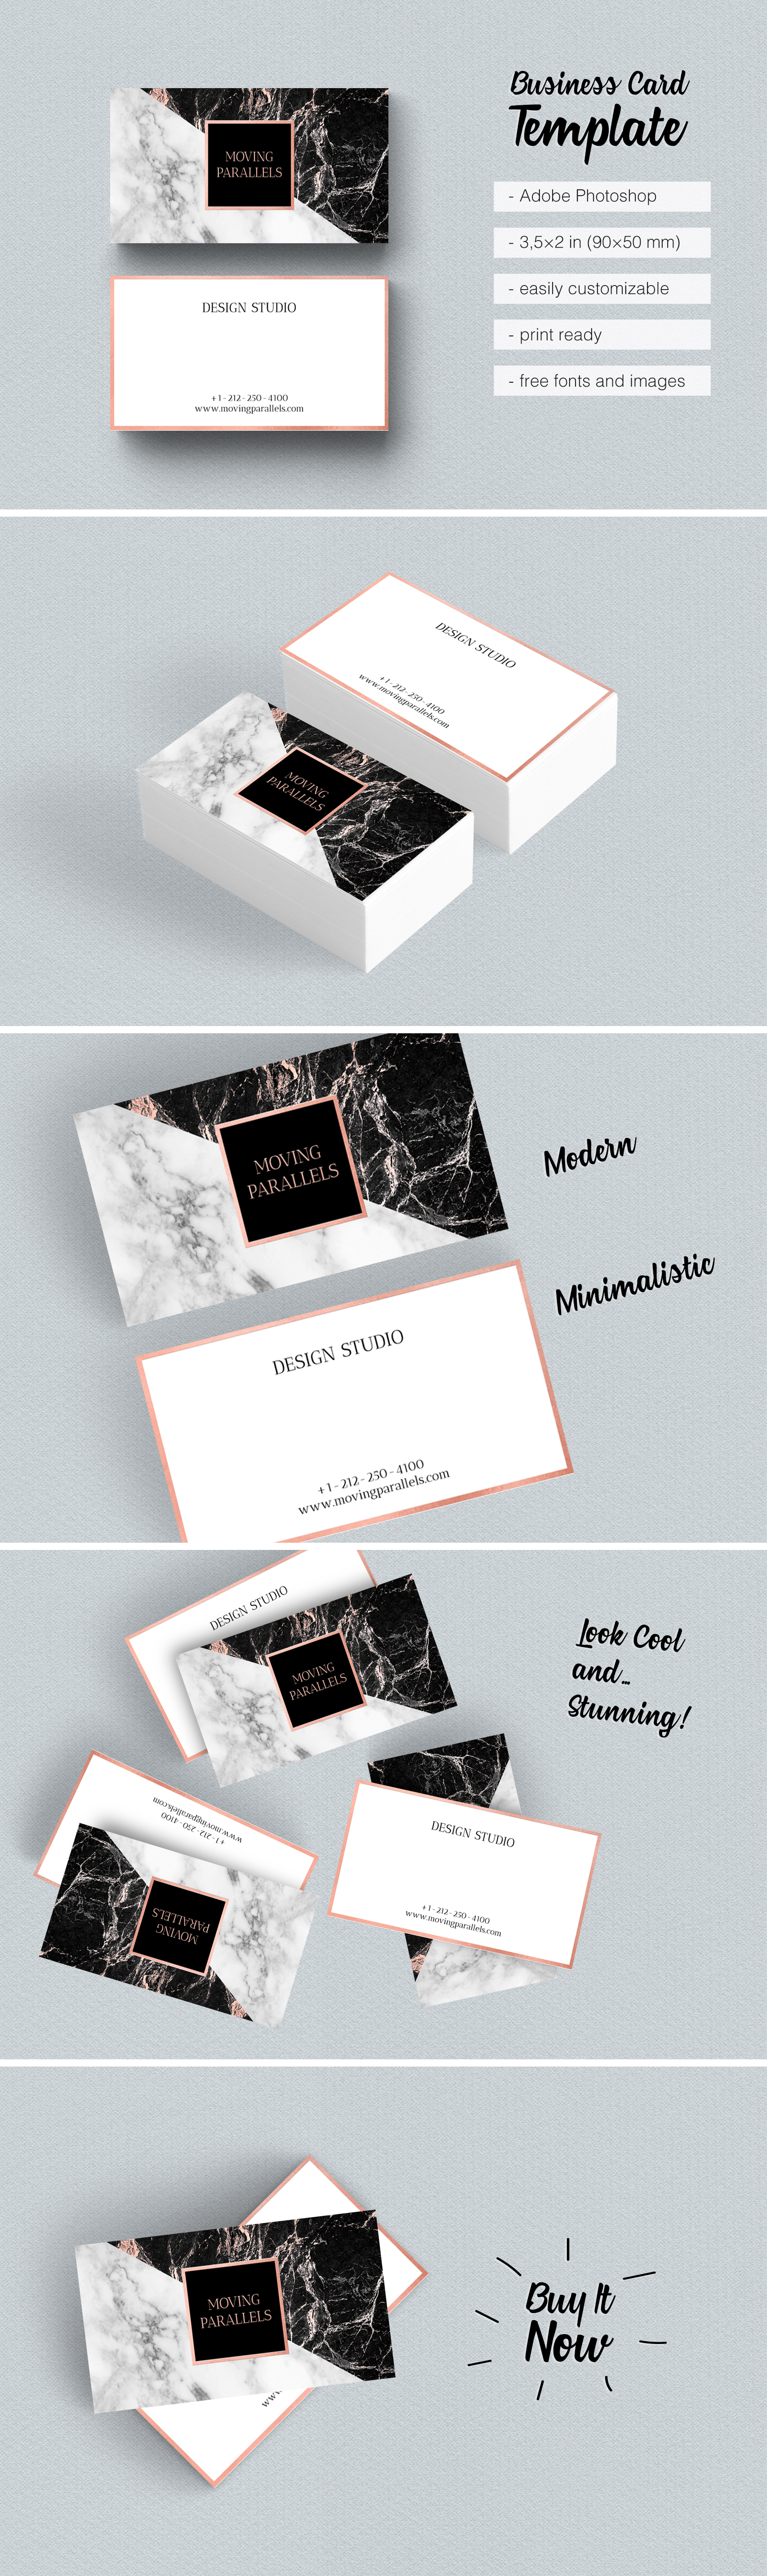 8 Rose Gold Business Card Etsy Is Classy Sophisticated And Elegant Visiting Templates